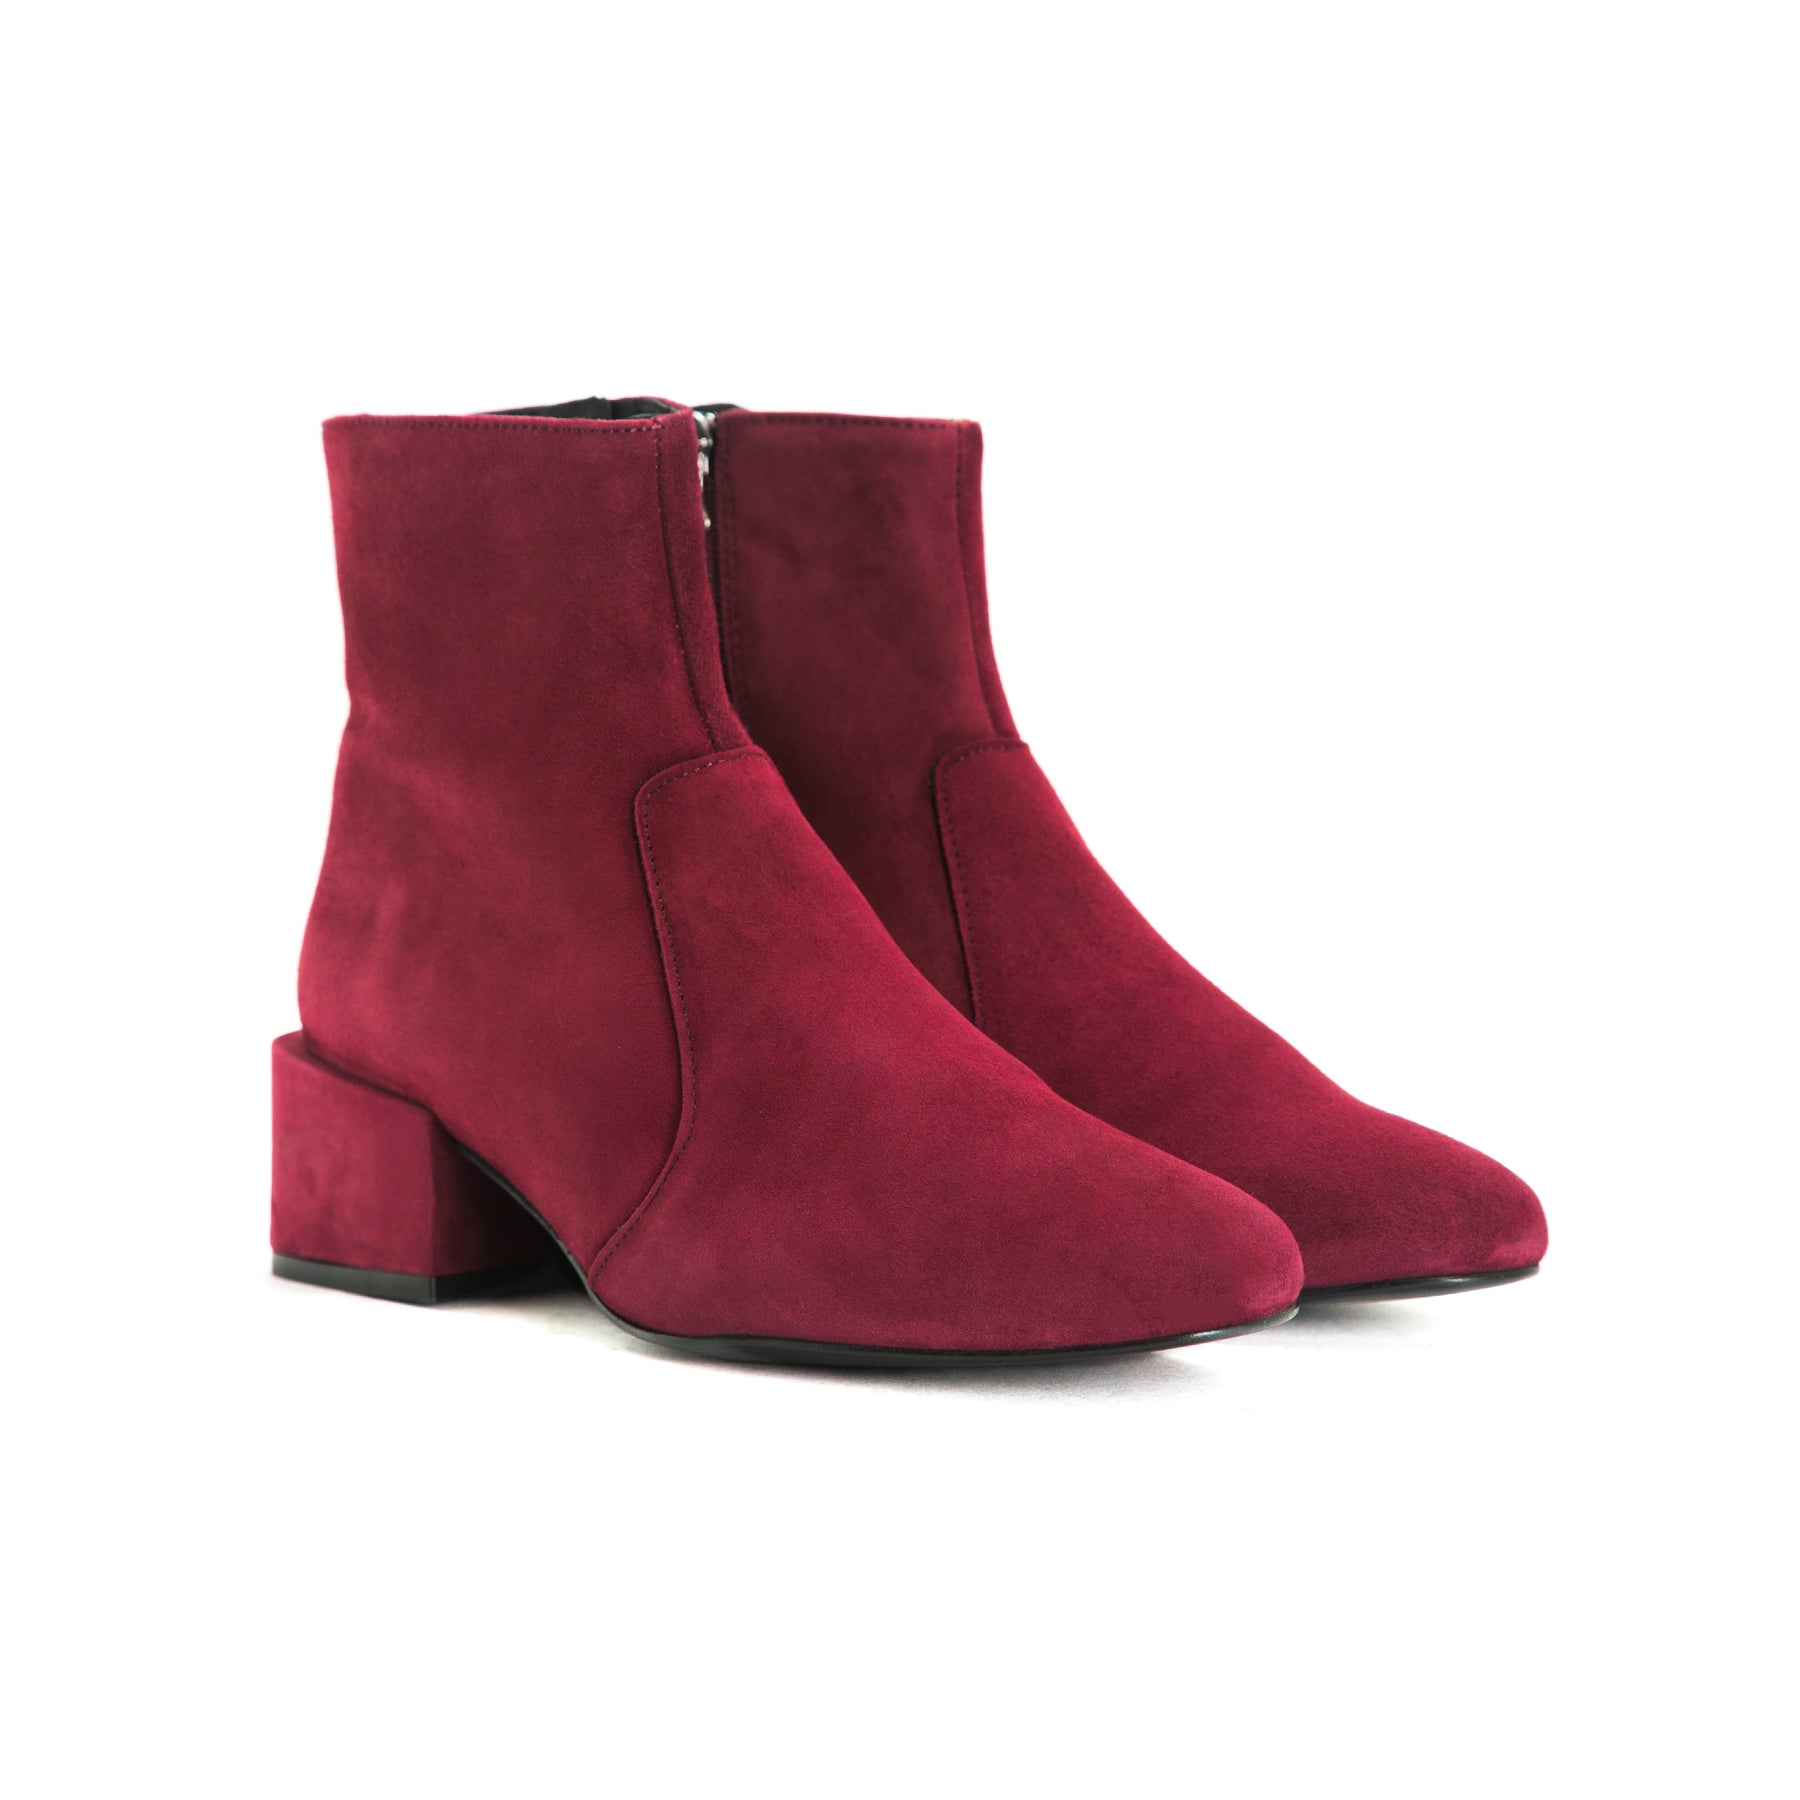 Thassos Bordo Suede Booties